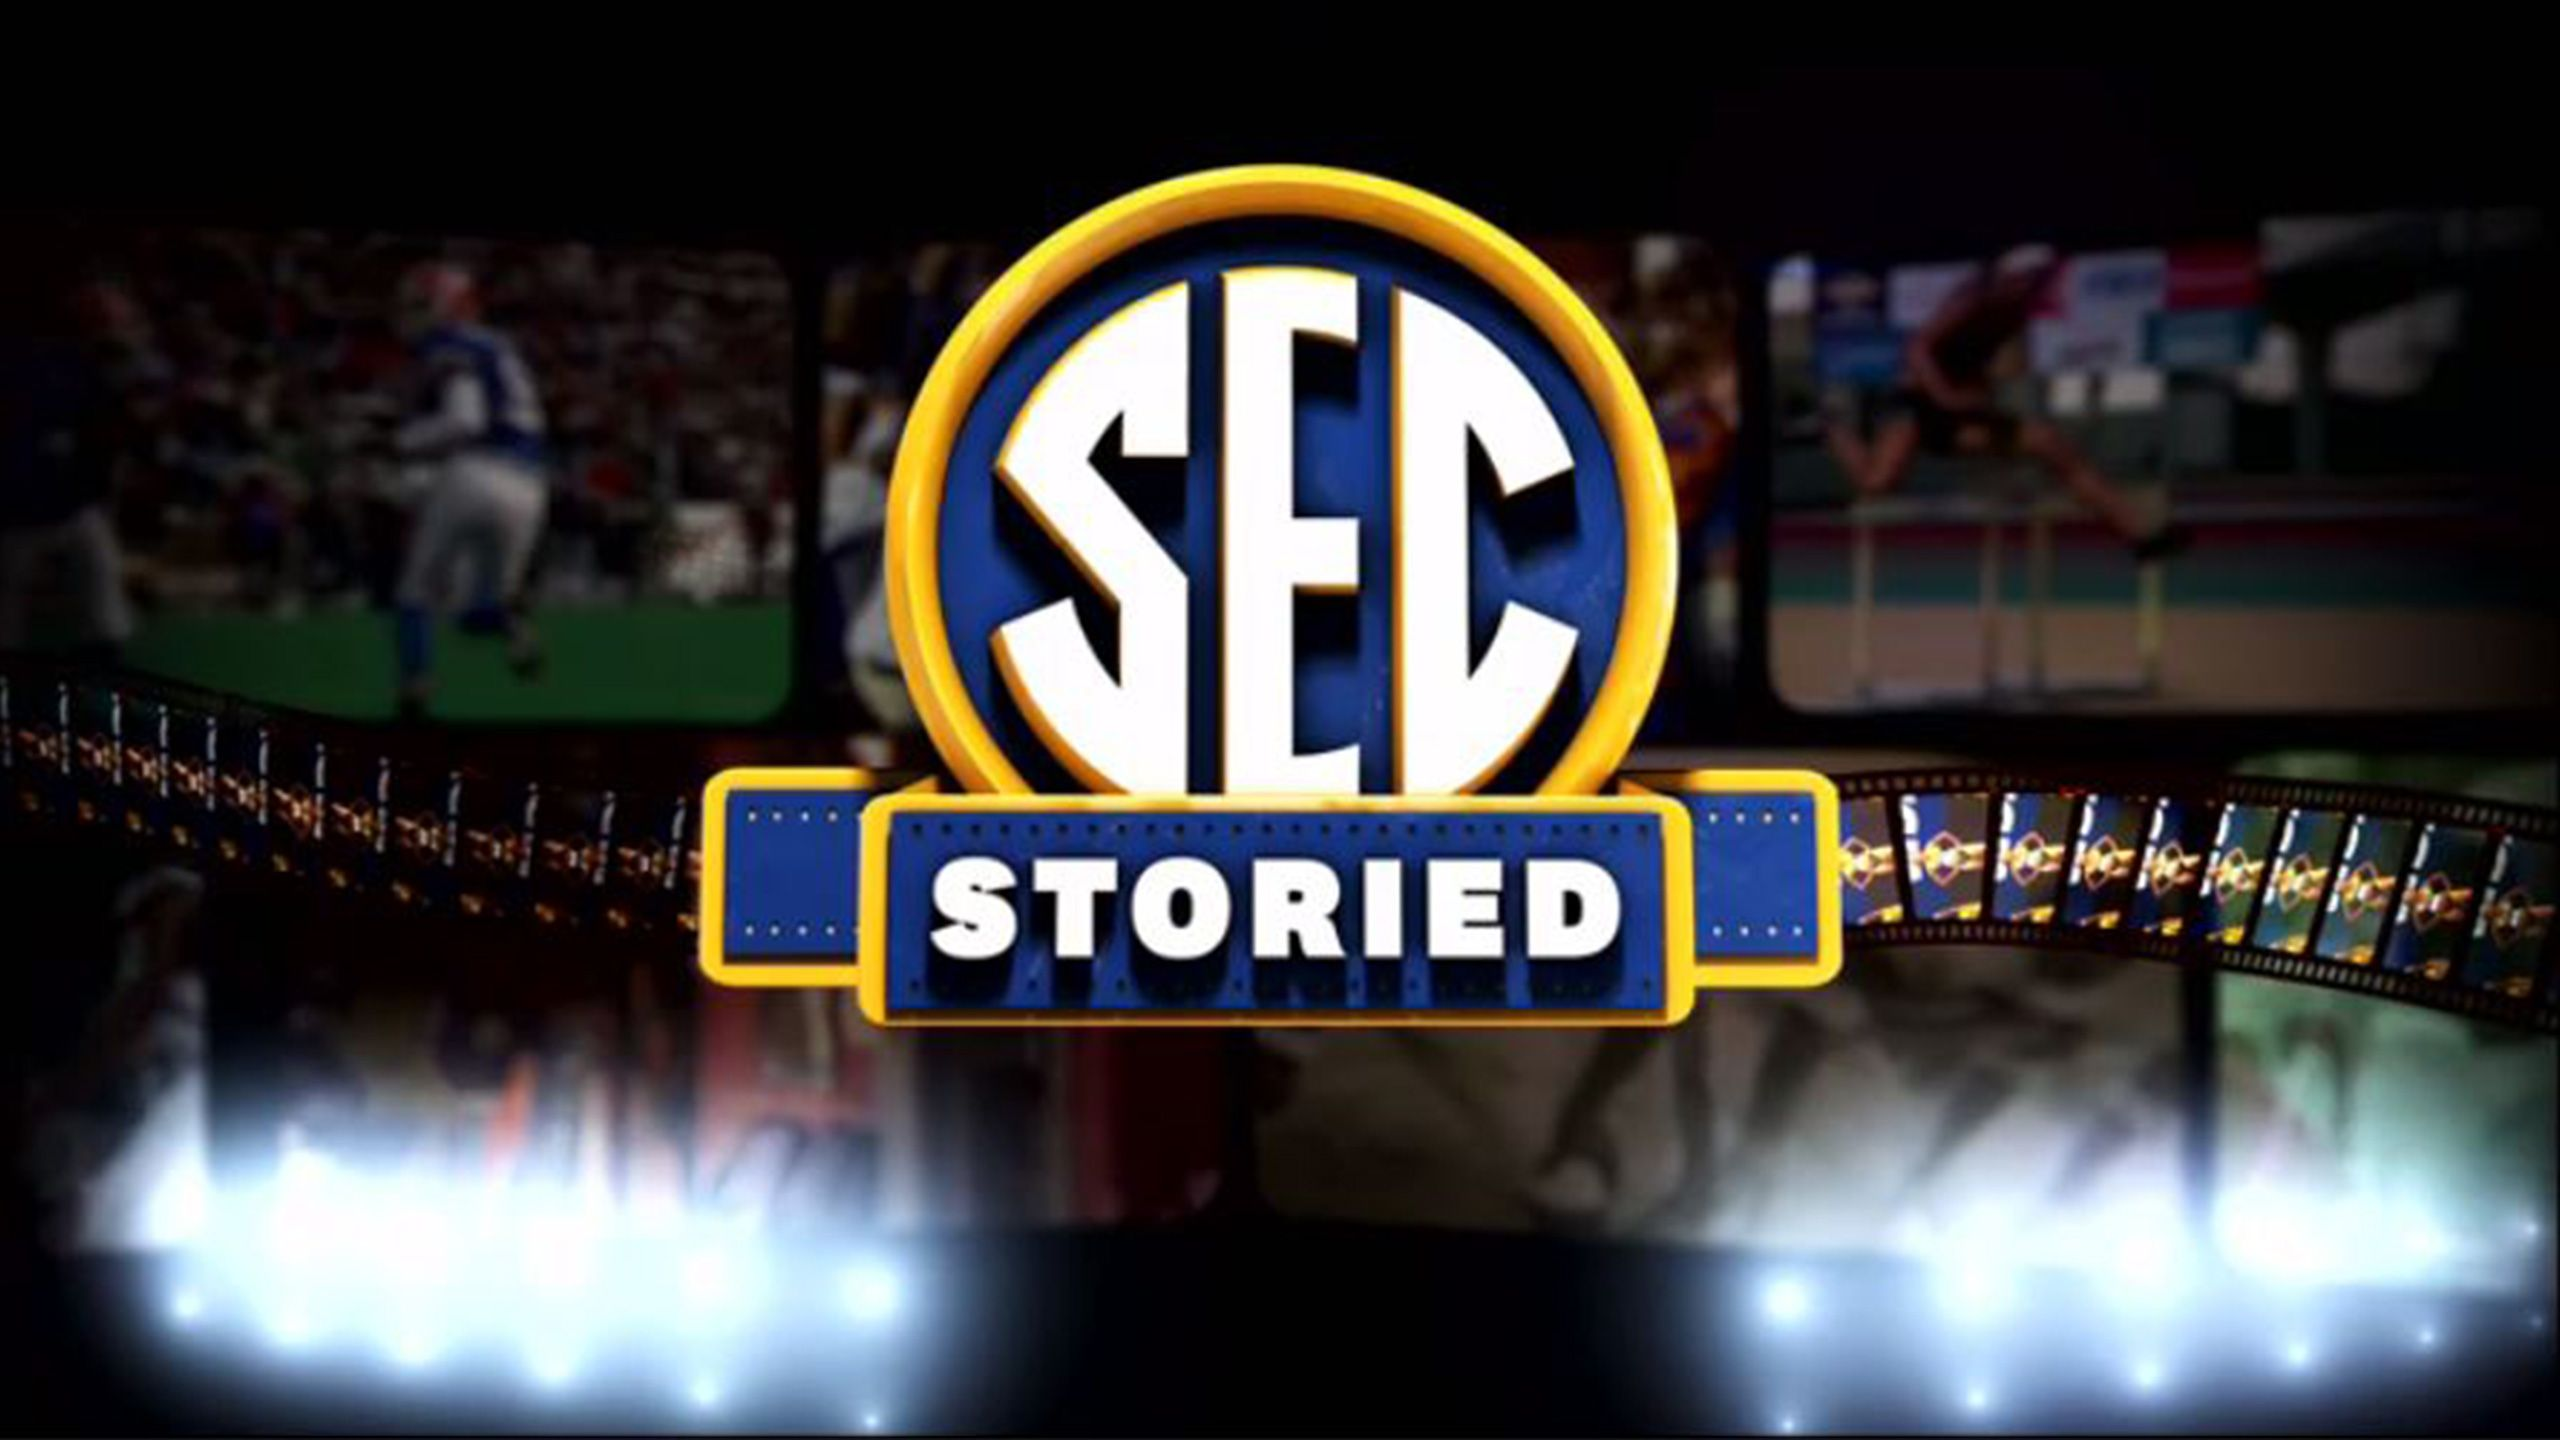 SEC Storied: Rowdy Presented by Chick-fil-A